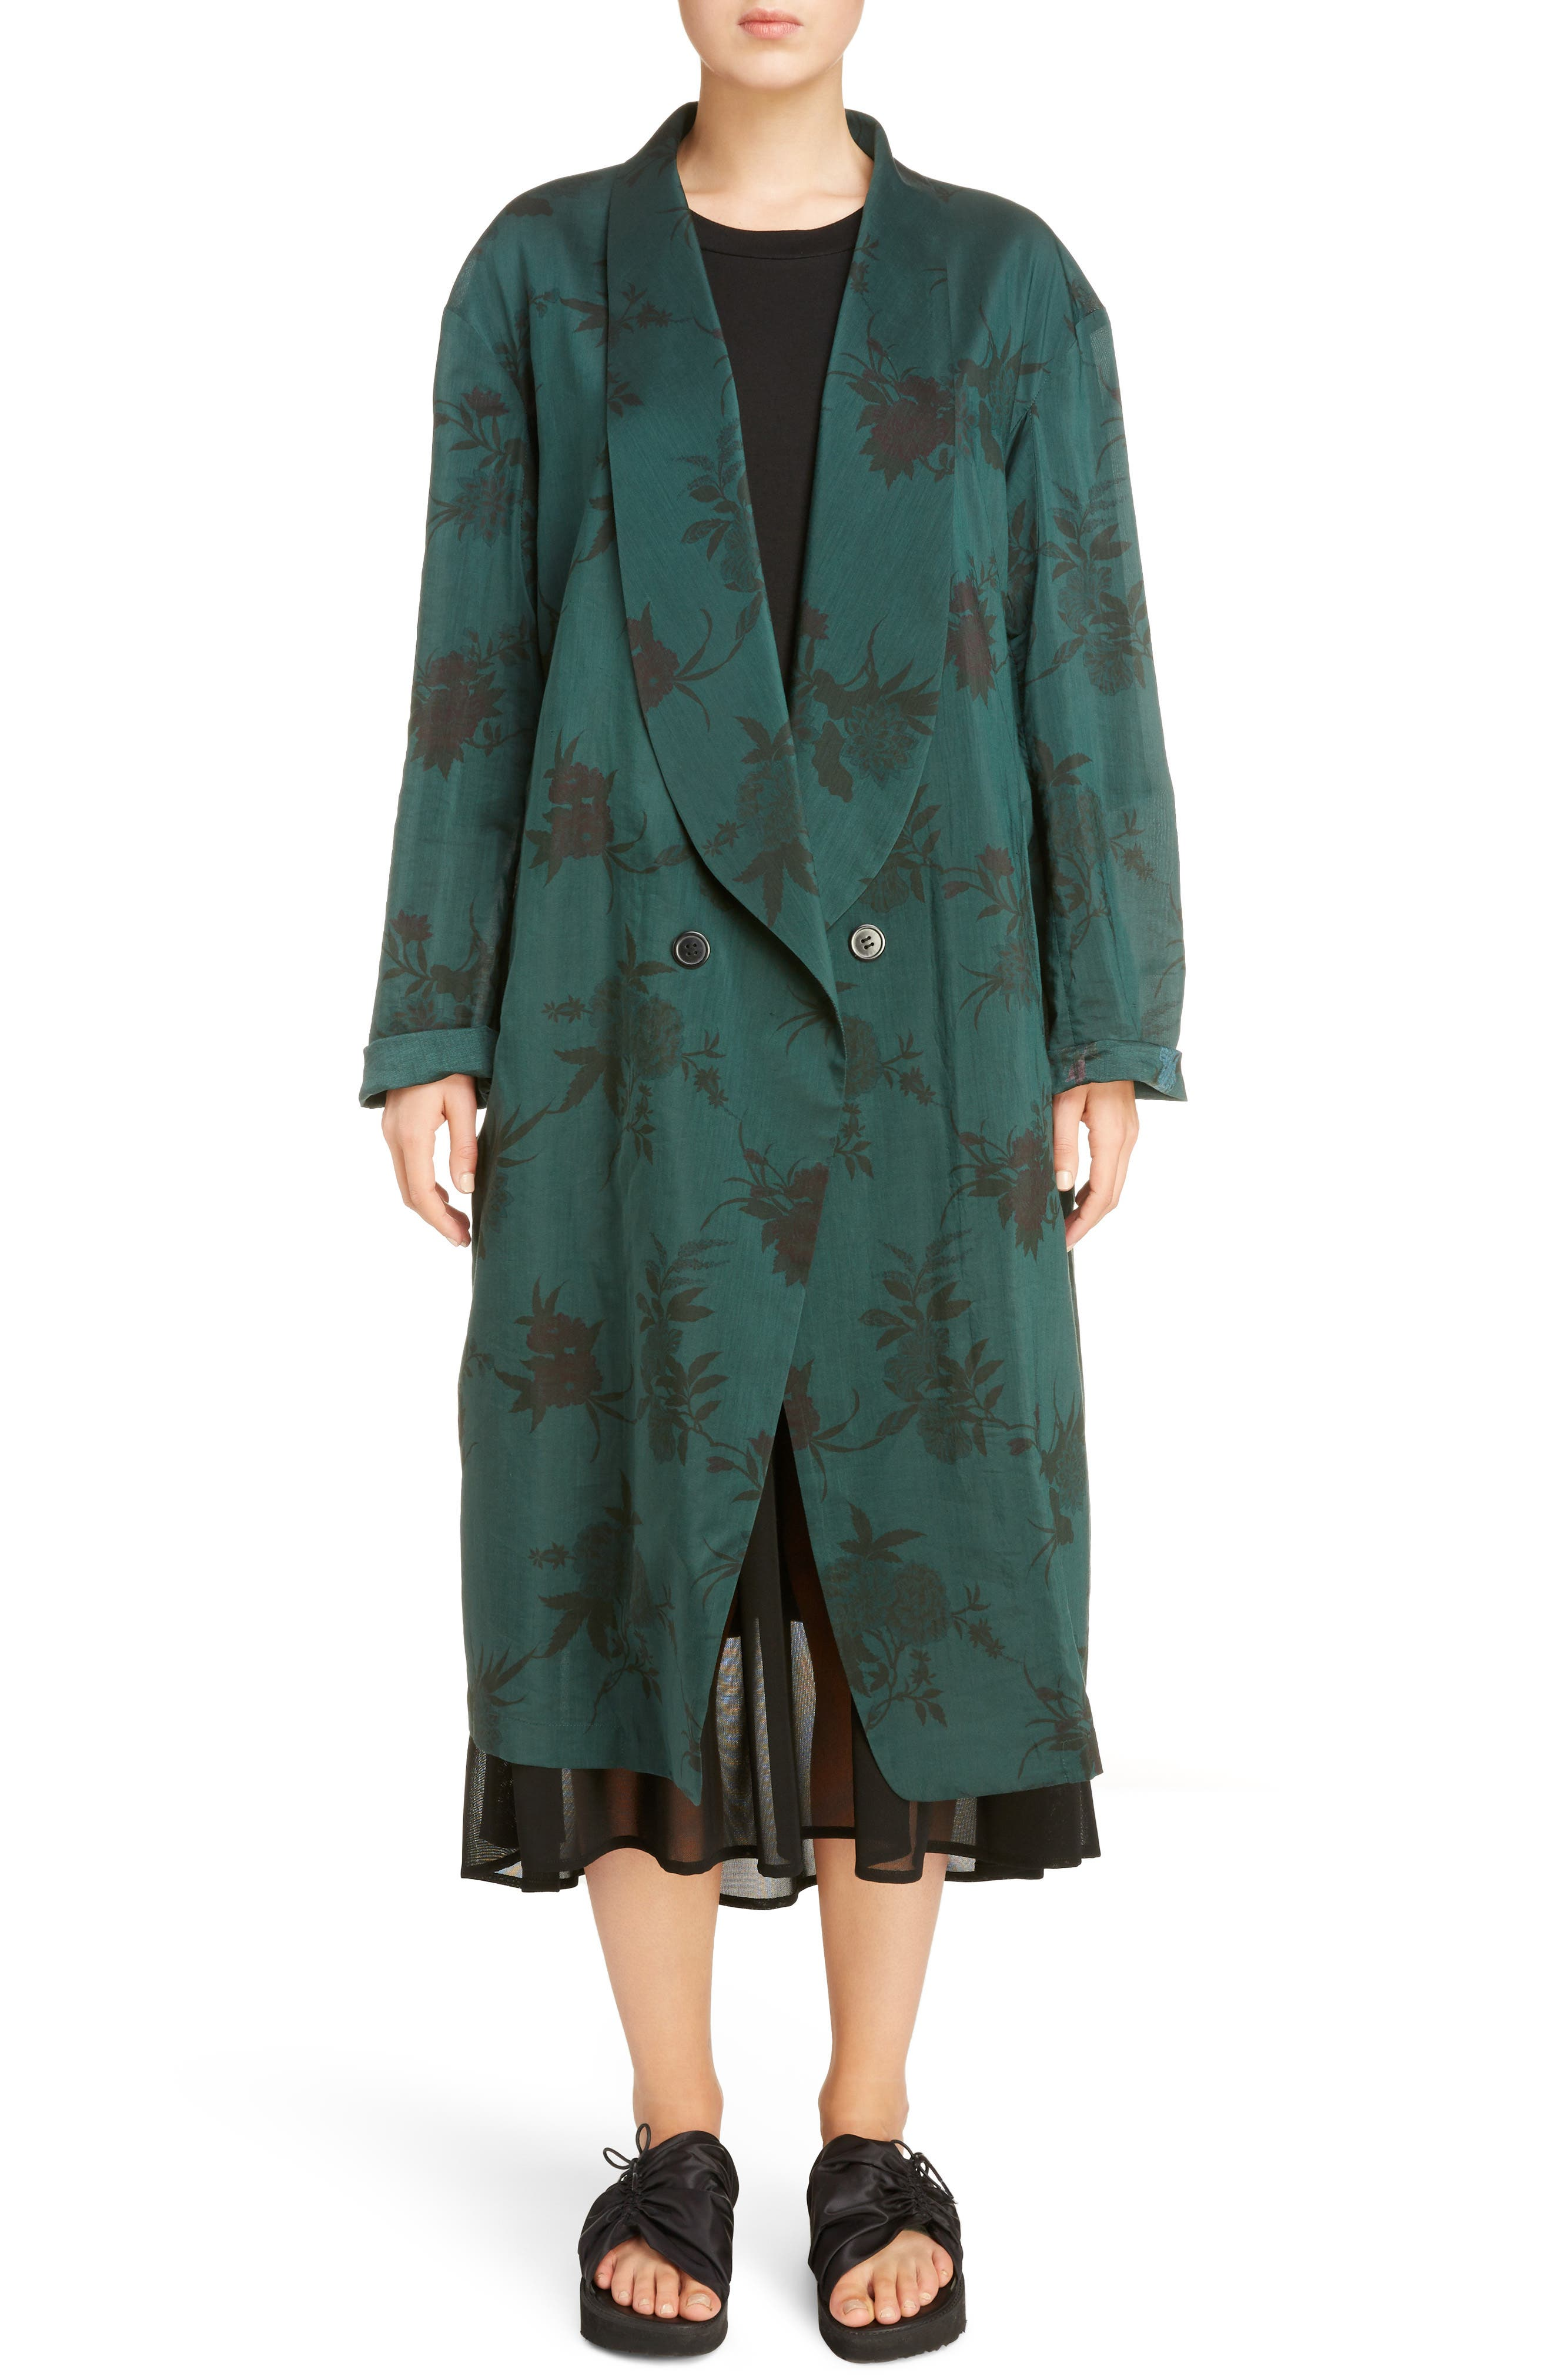 Alternate Image 1 Selected - Y's by Yohji Yamamoto Floral Coat